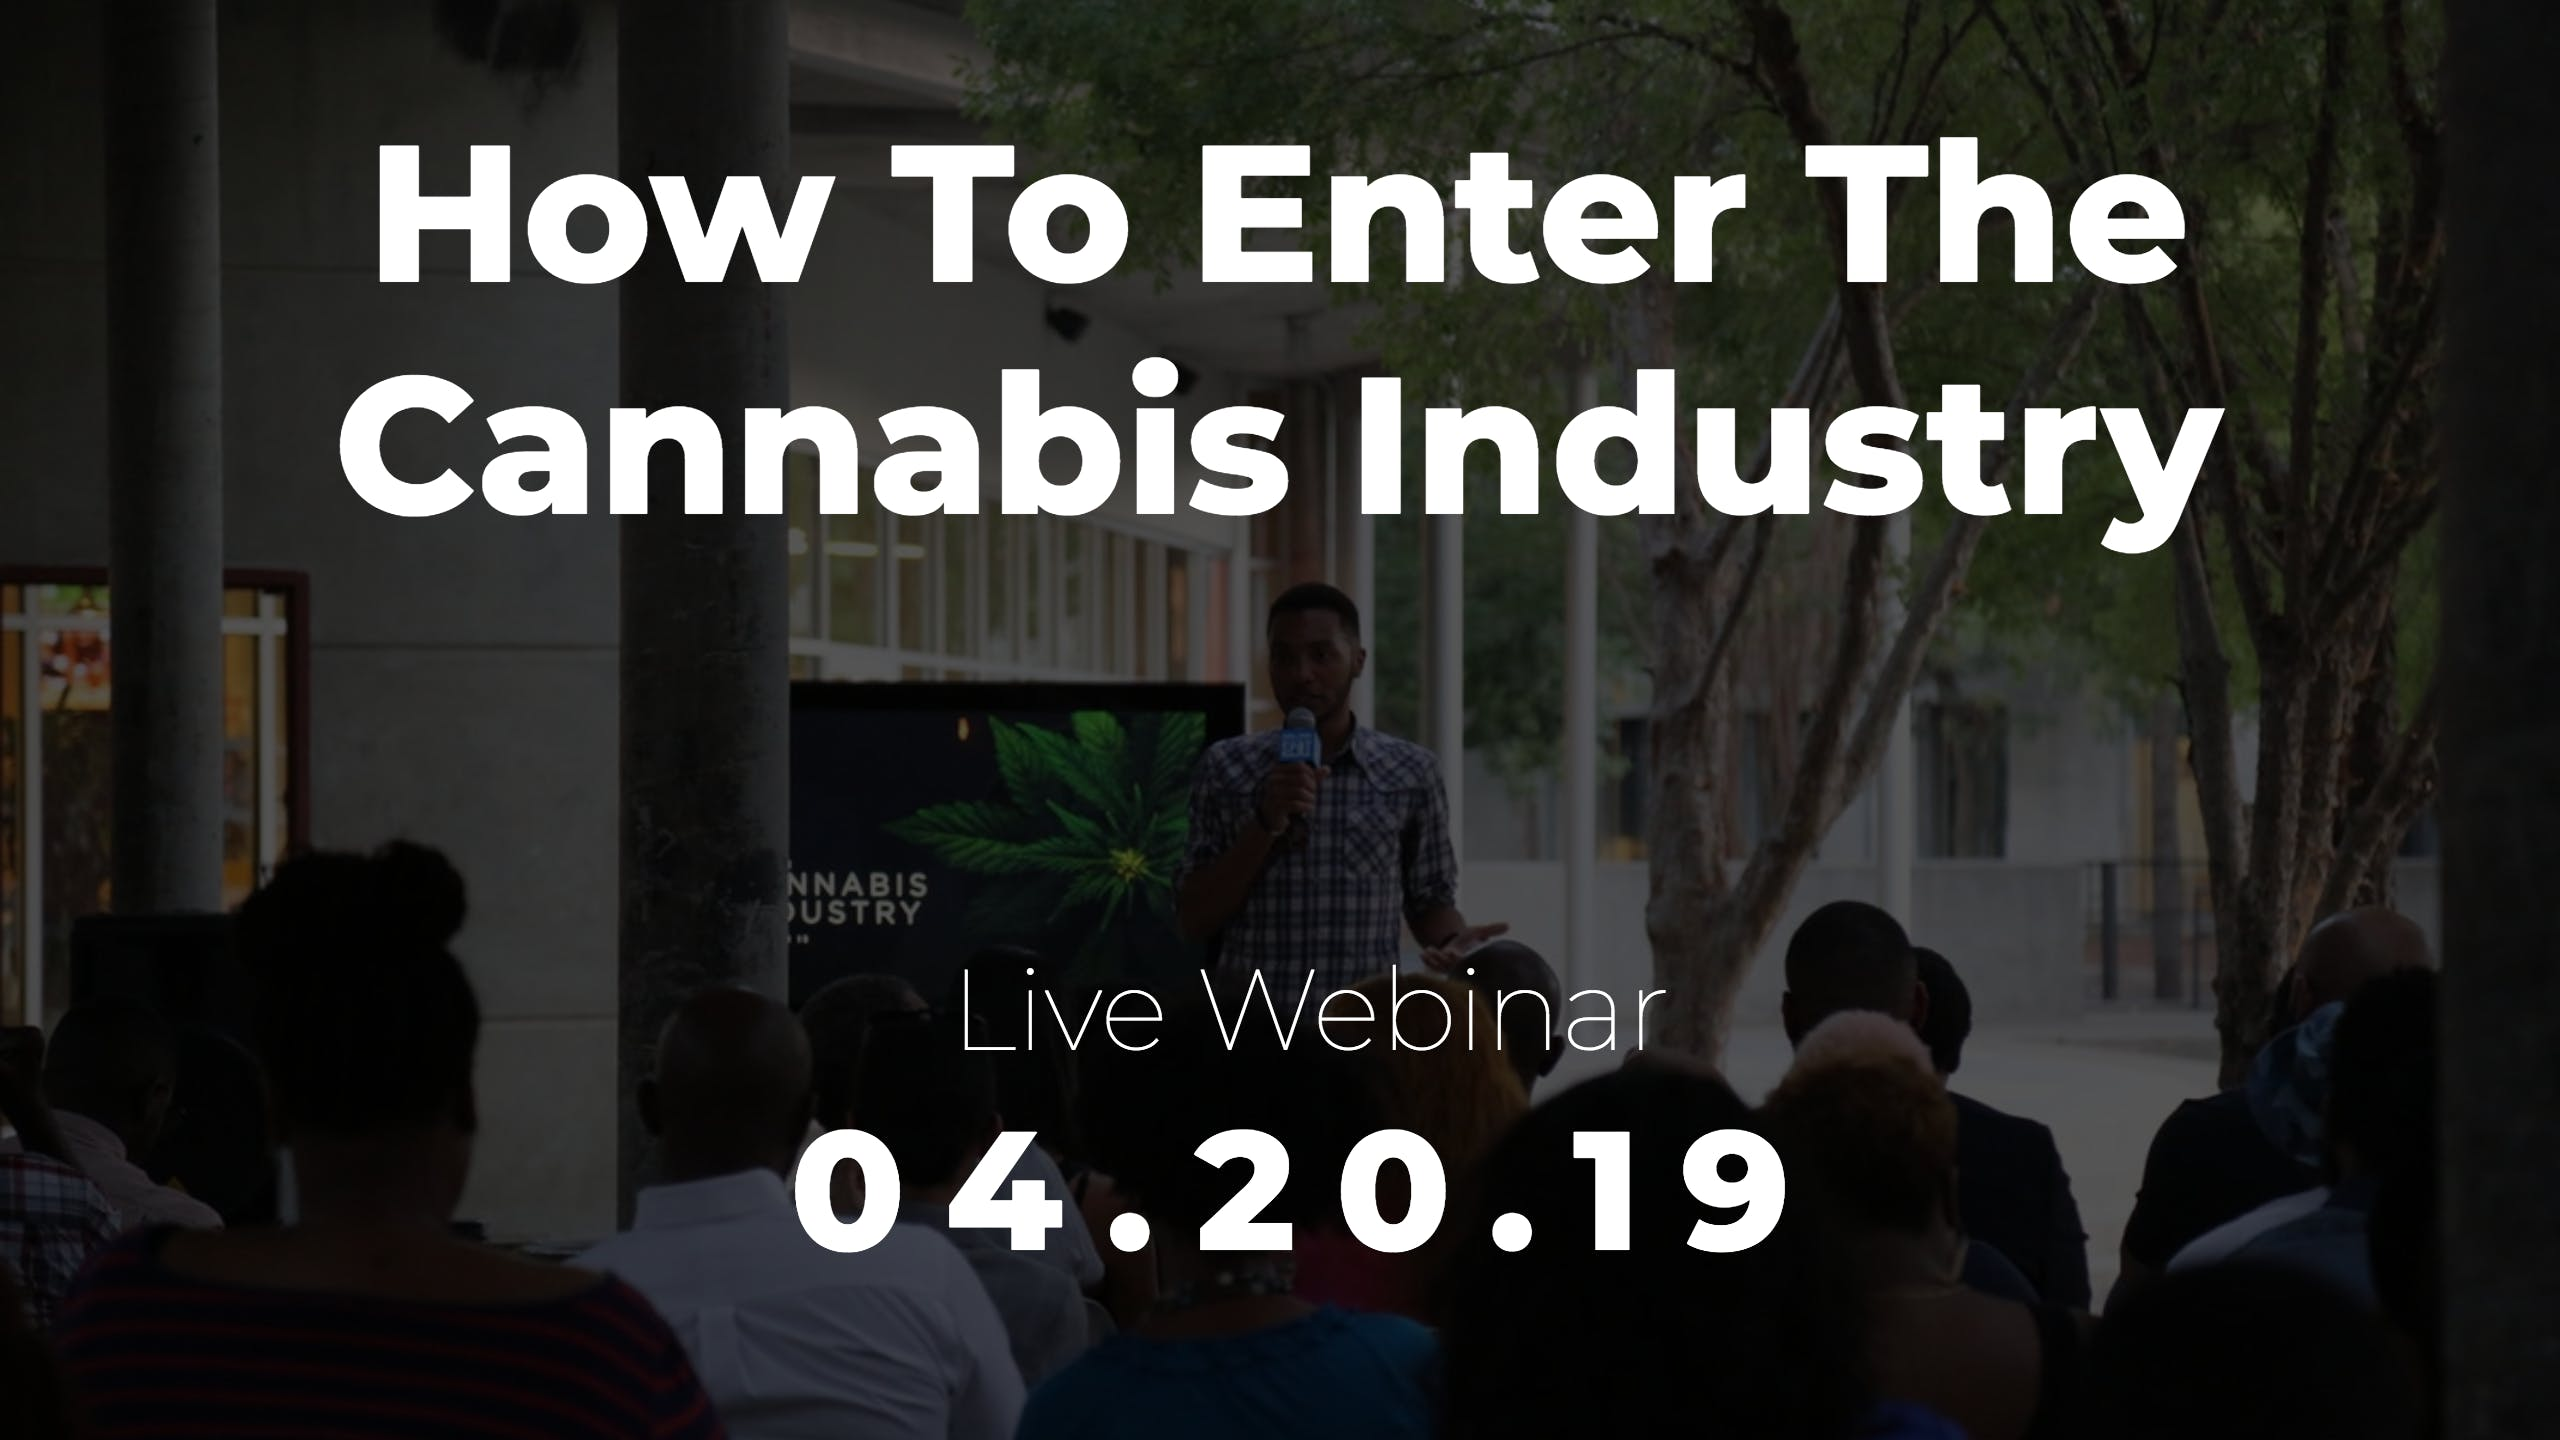 How To Enter The Cannabis Industry - [Webinar] - Pheonix